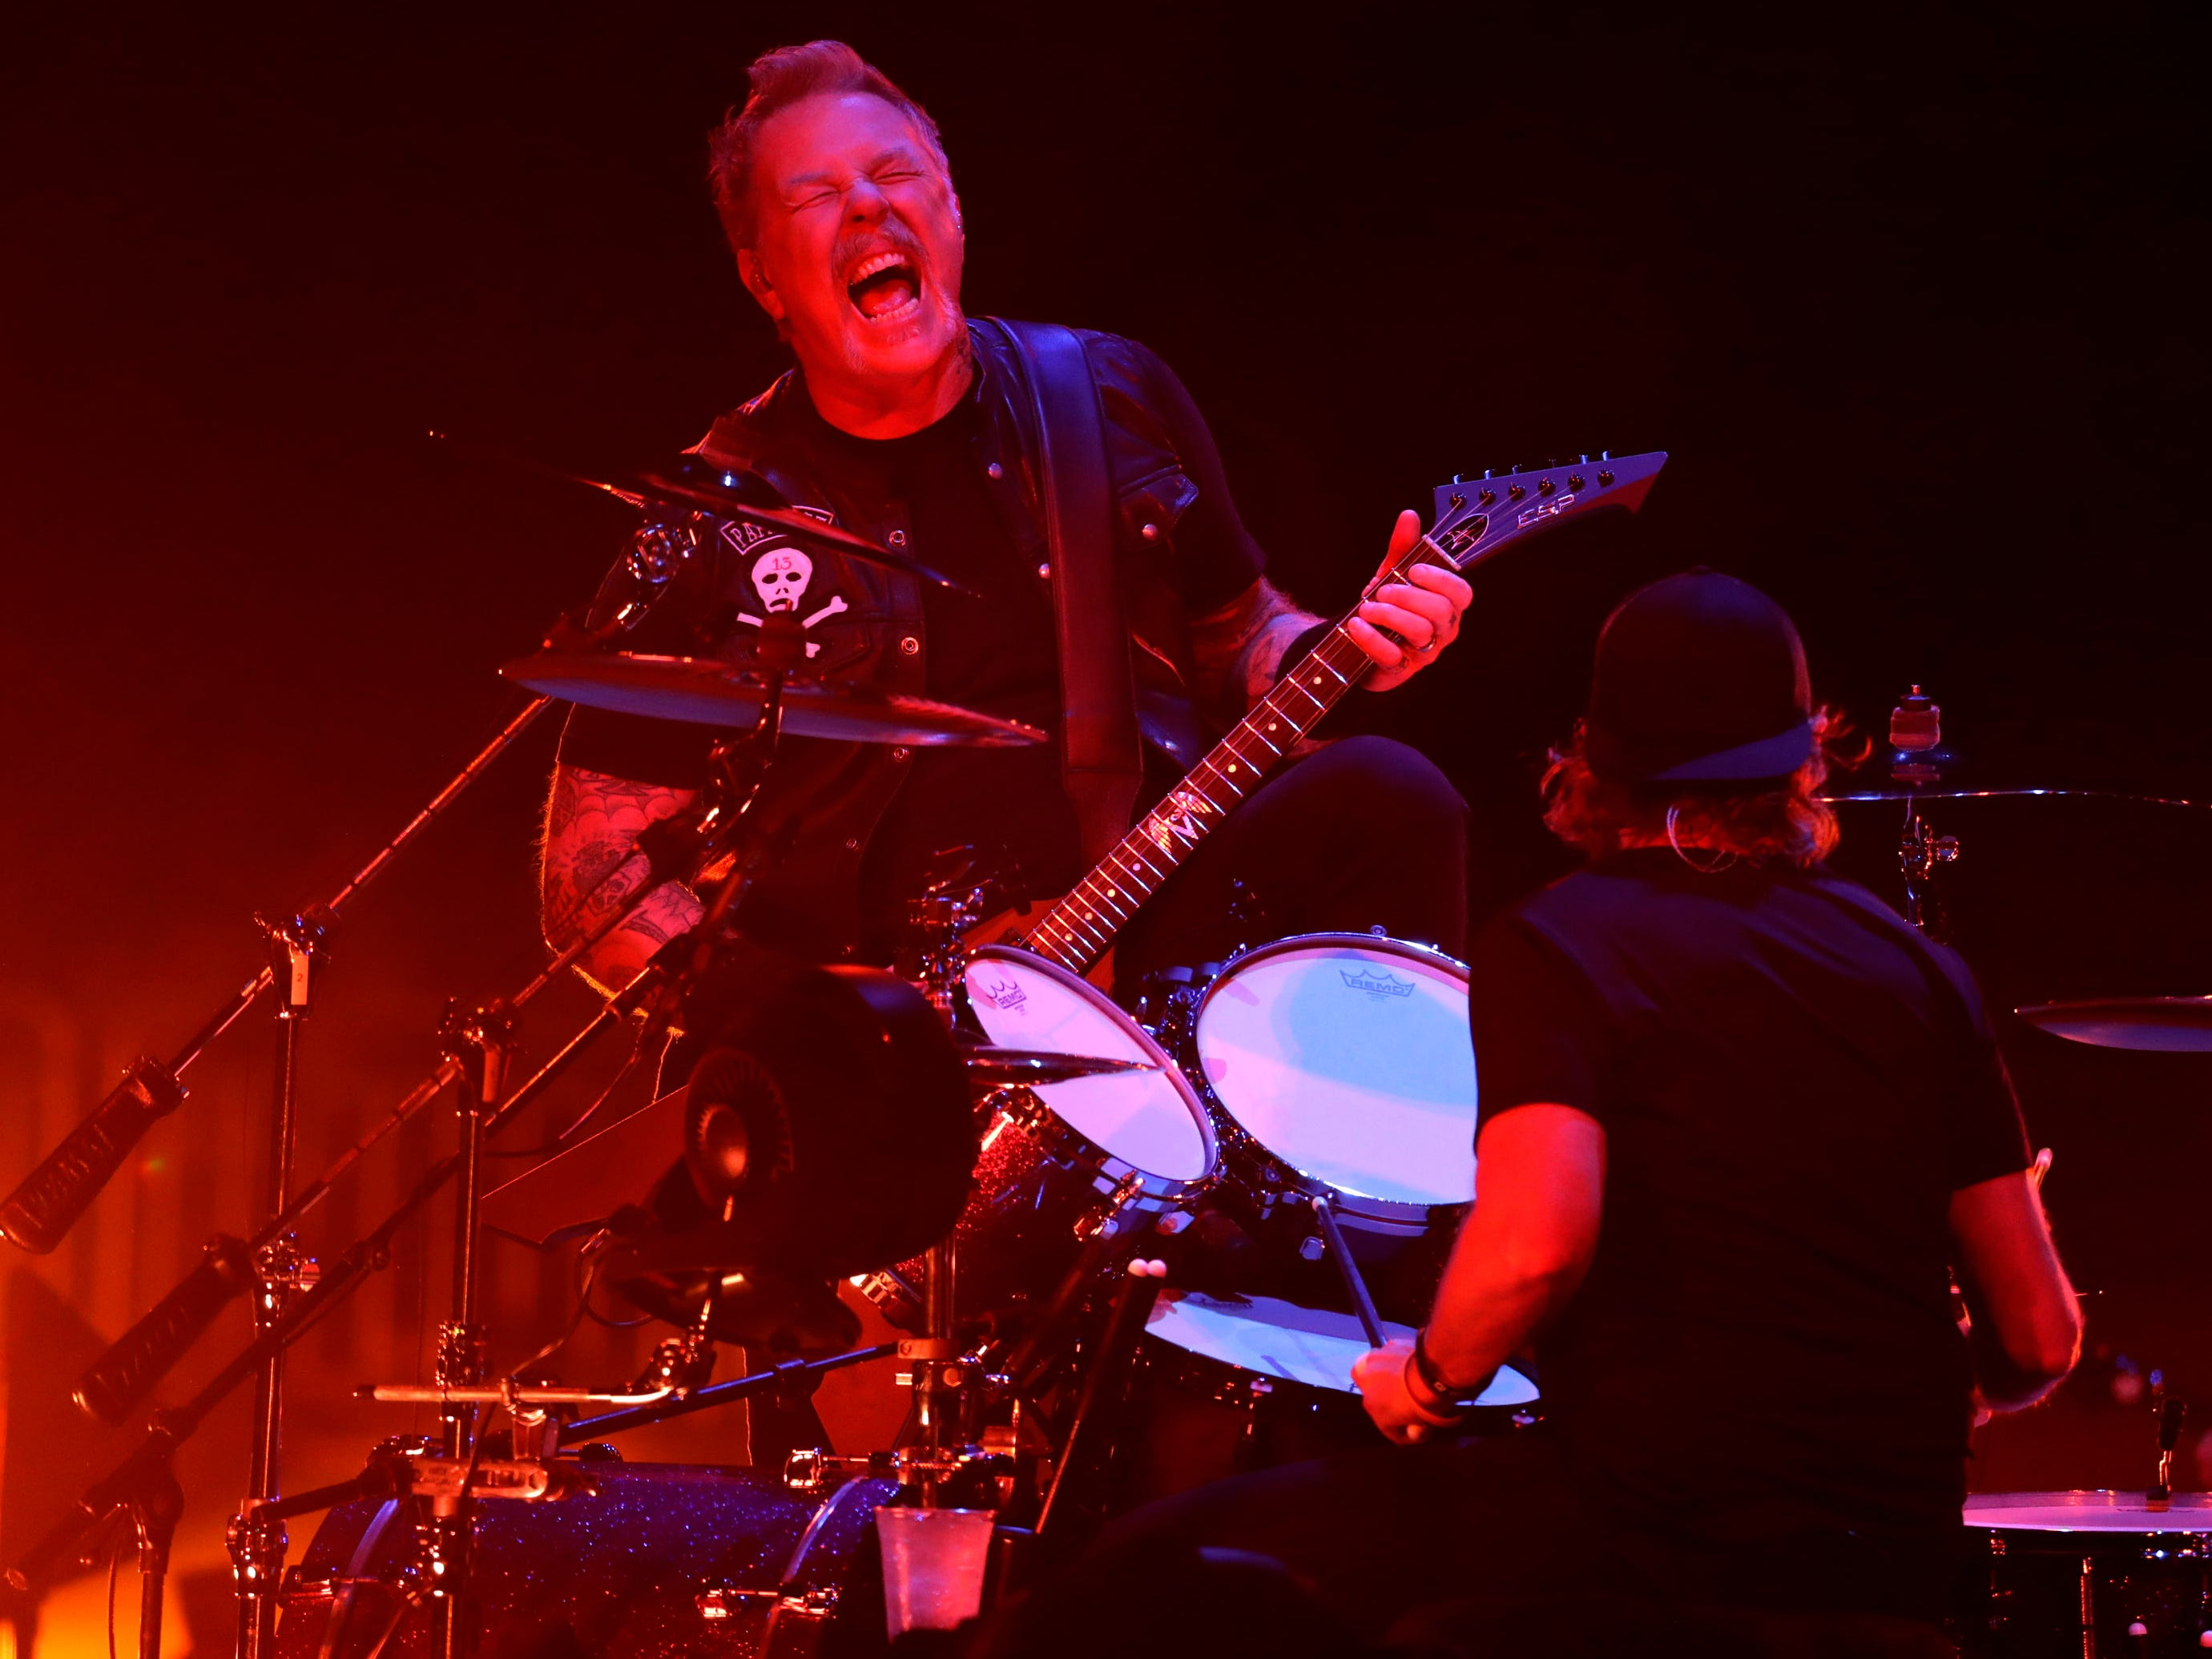 Metallica performs a sold-out show at Fiserv Forum in Milwaukee on Tuesday night.